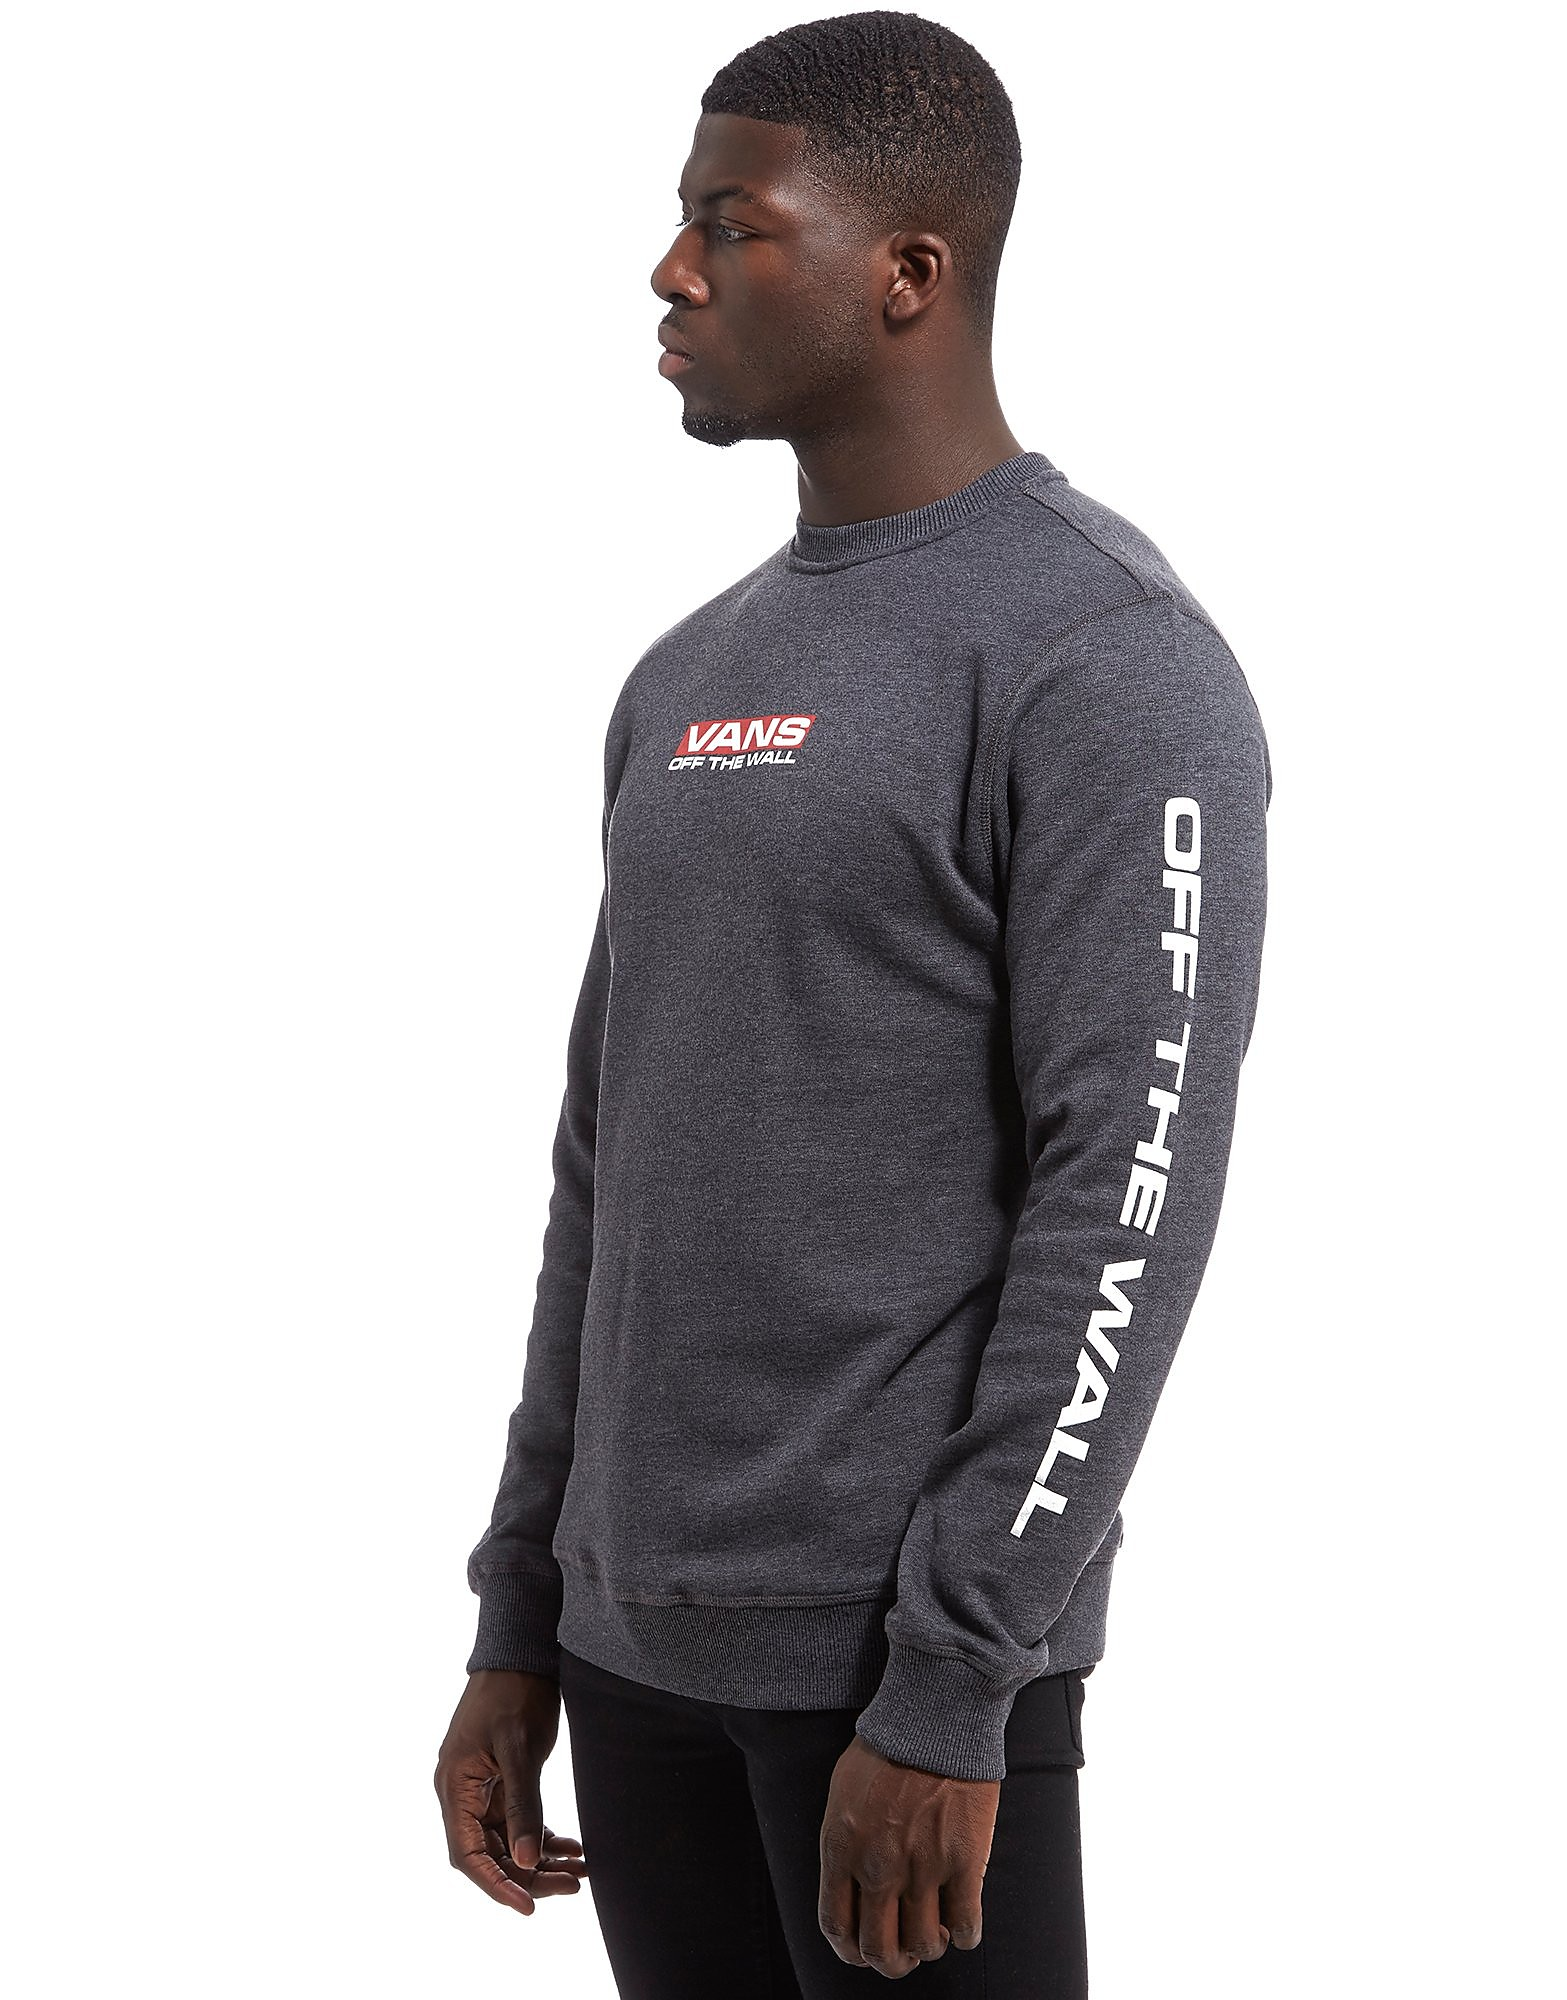 Vans Retro Box Crew Sweatshirt